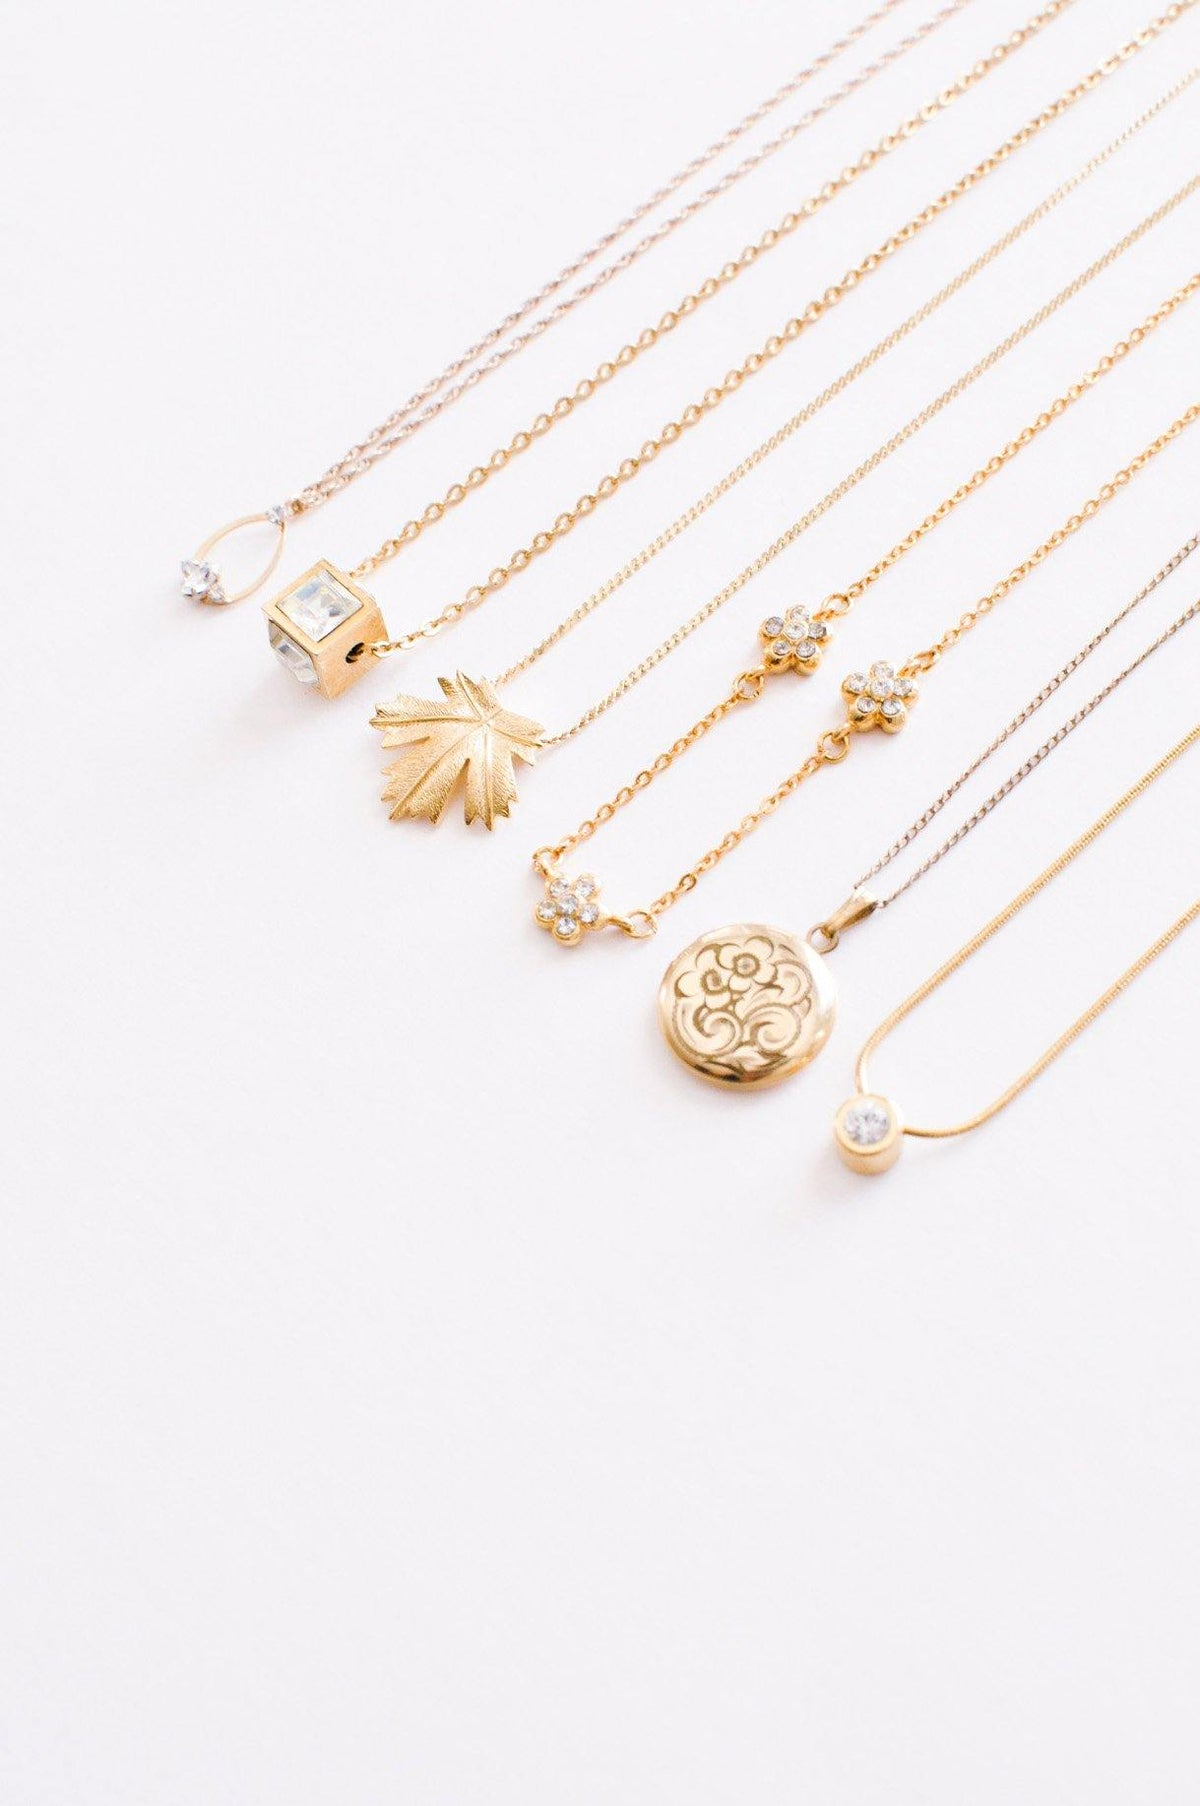 Vintage dainty pendant necklaces from Sweet & Spark.